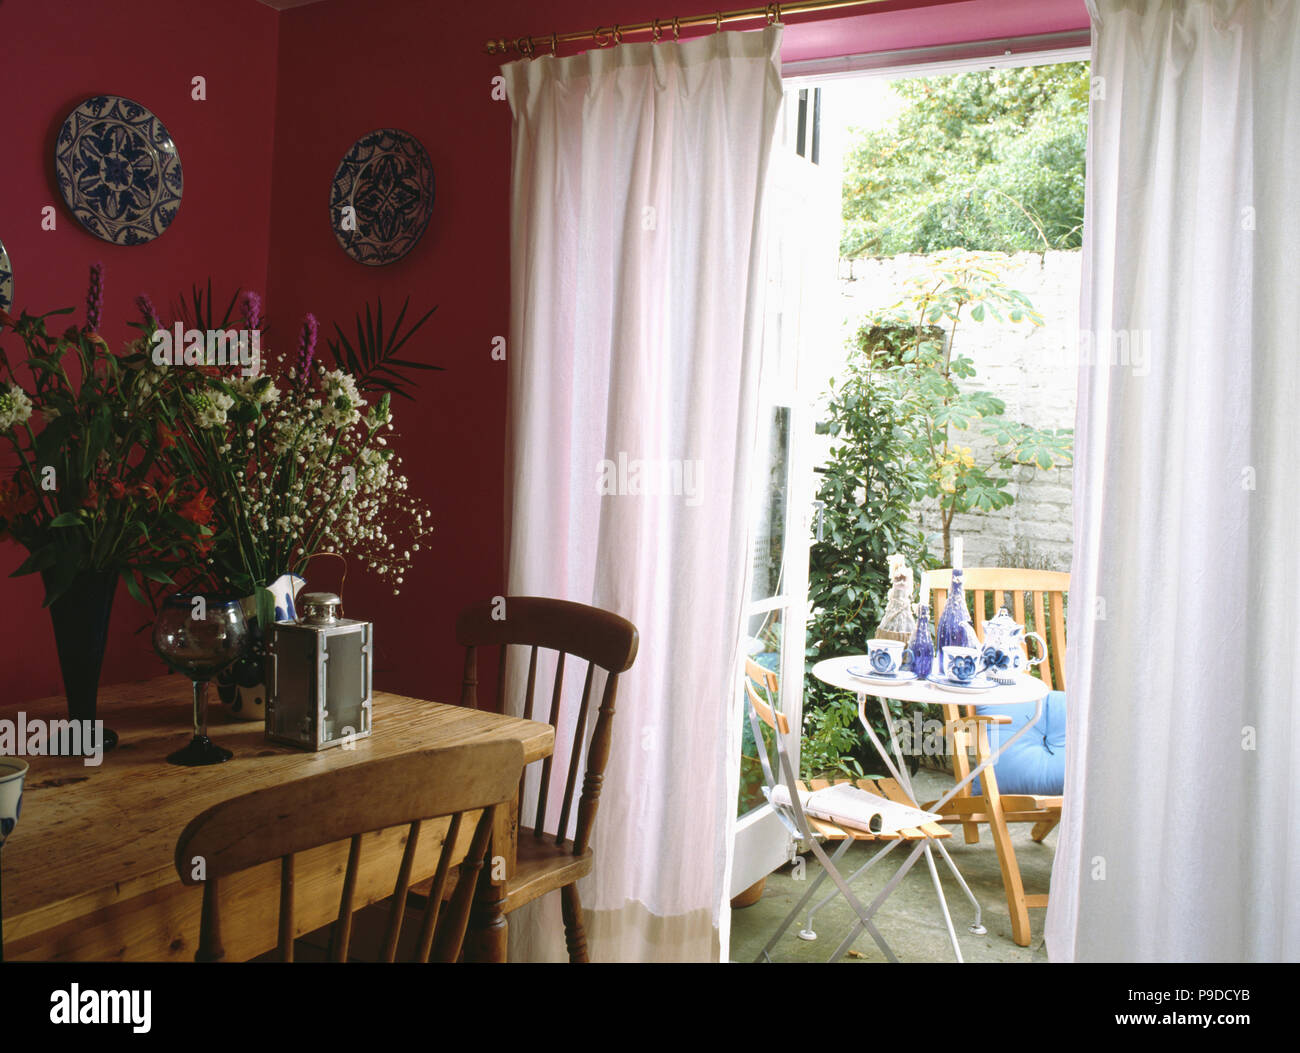 Pine Table And Chairs In Pink Diningroom With White Curtains At French Doors With View Of Patio Garden Stock Photo Alamy